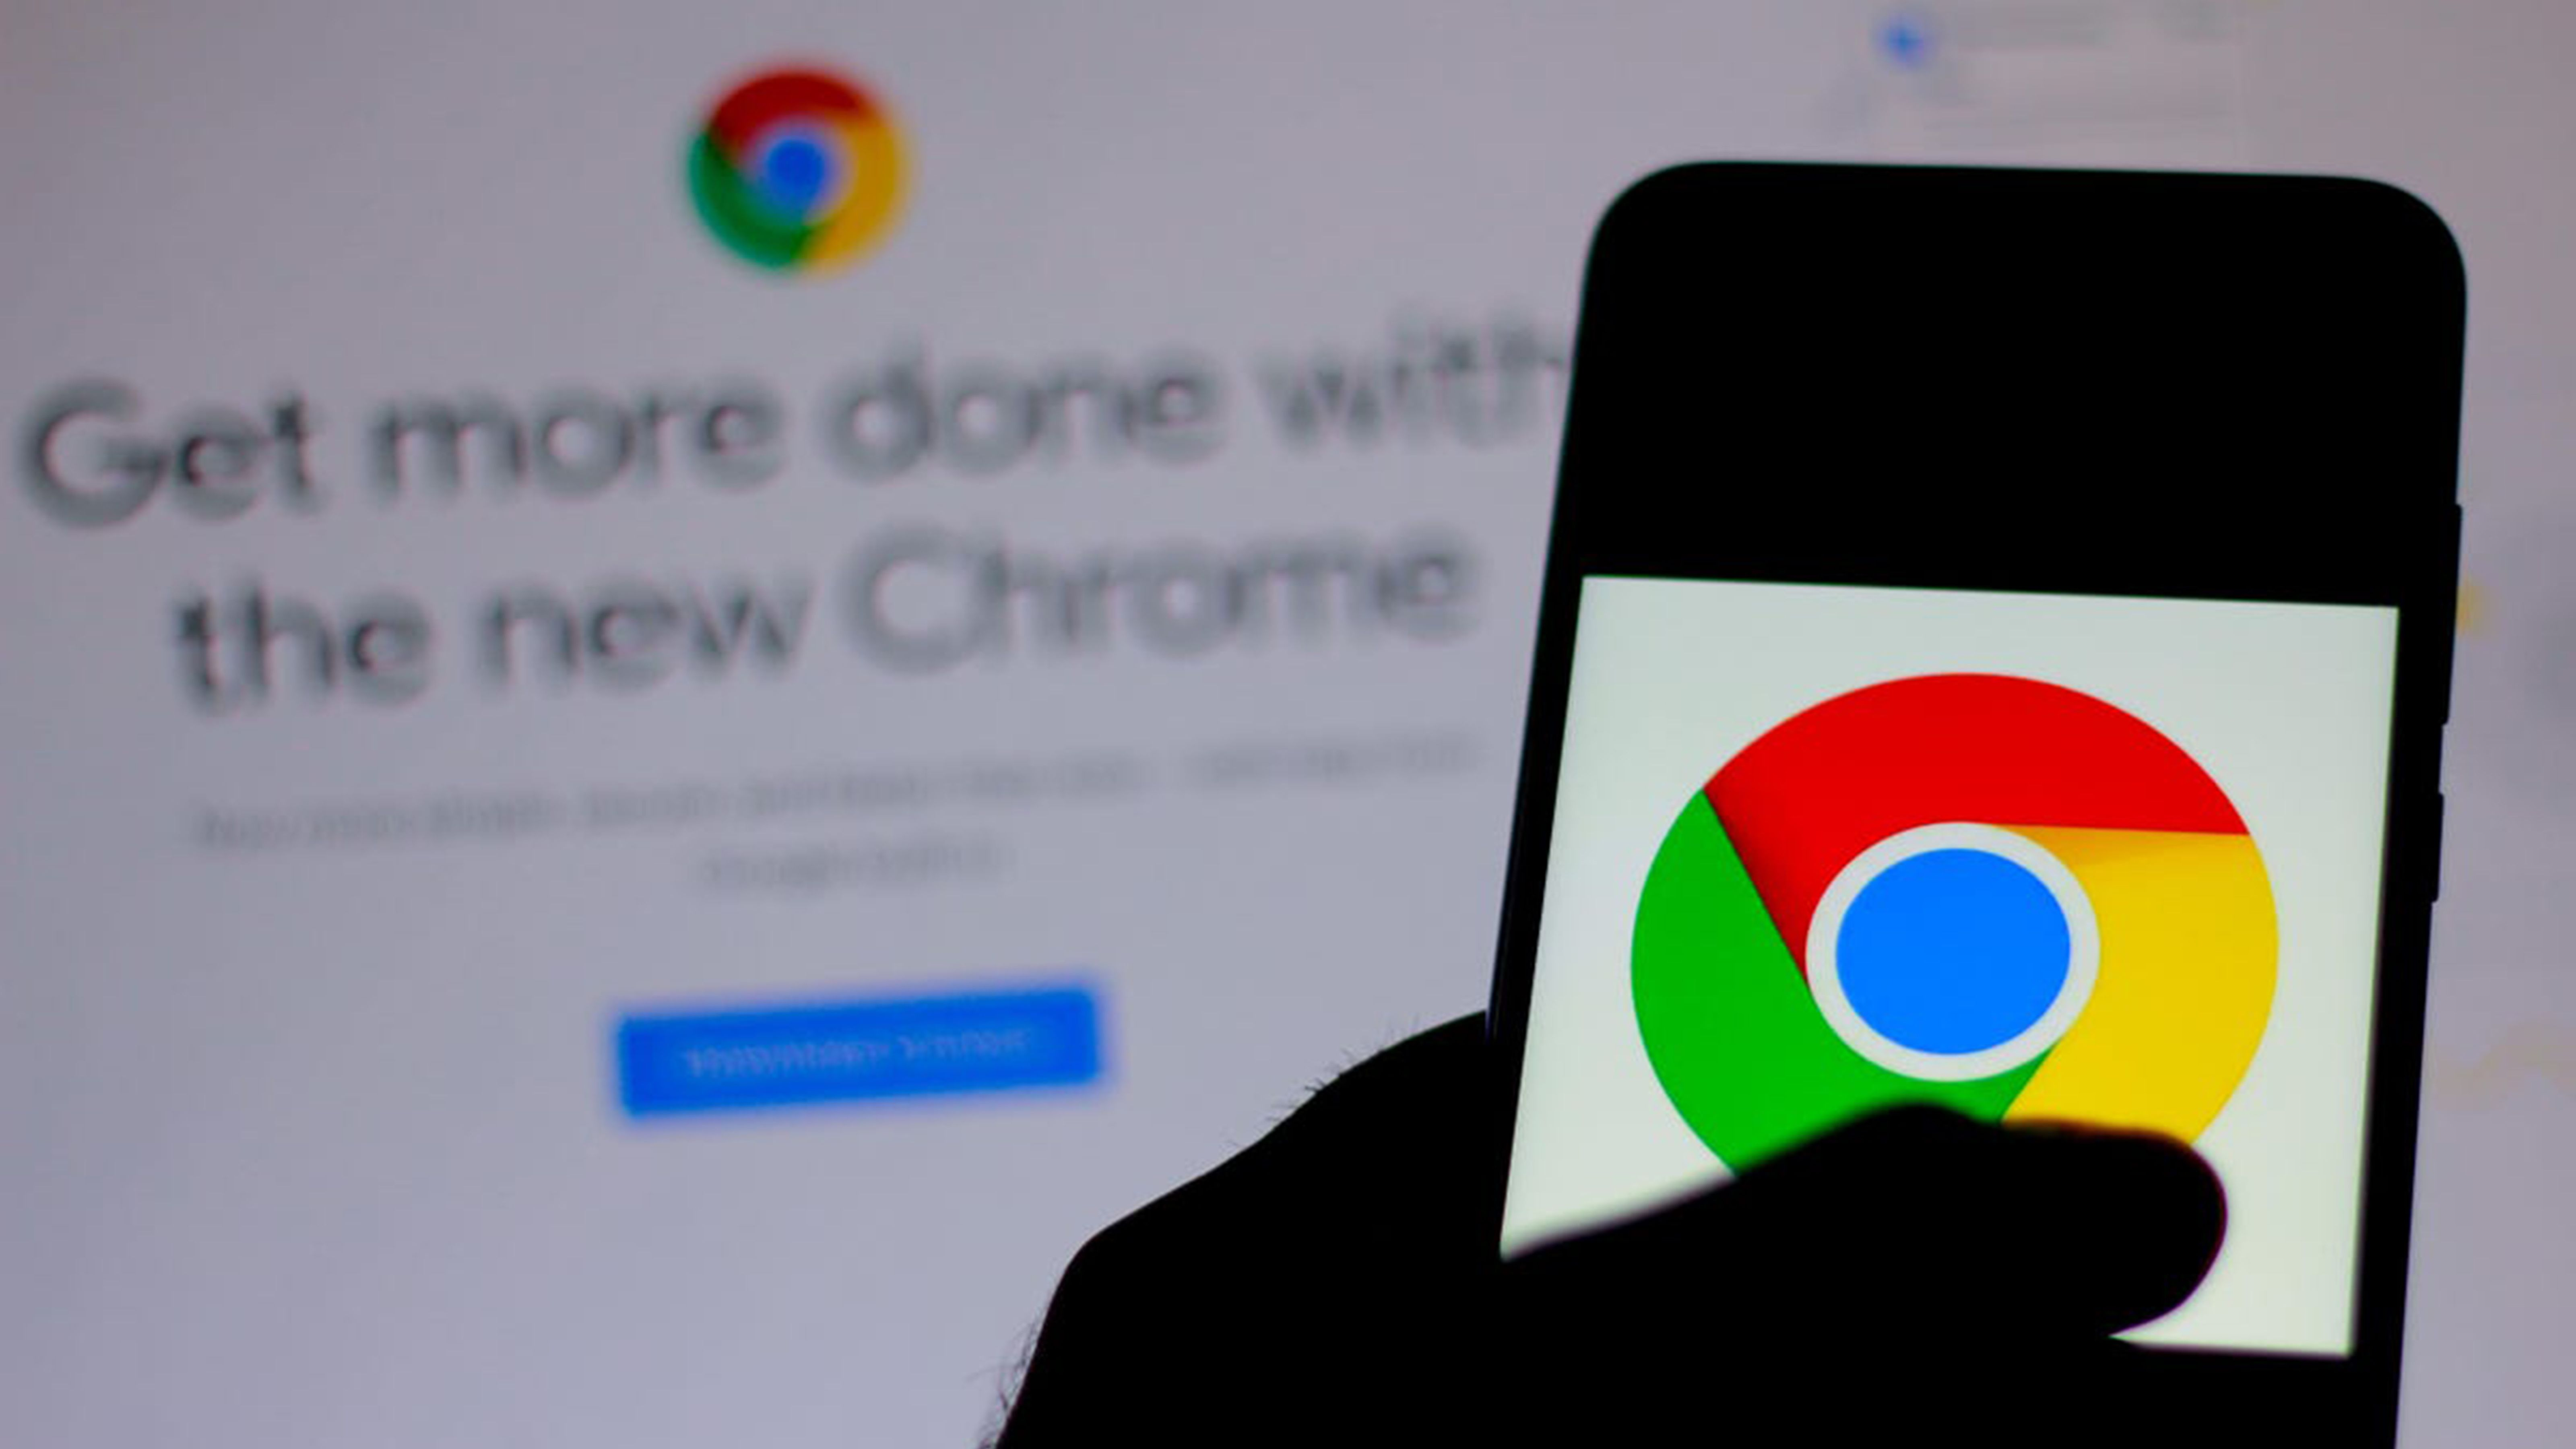 Google issues warnings, patches for Chrome users photo from Forbes